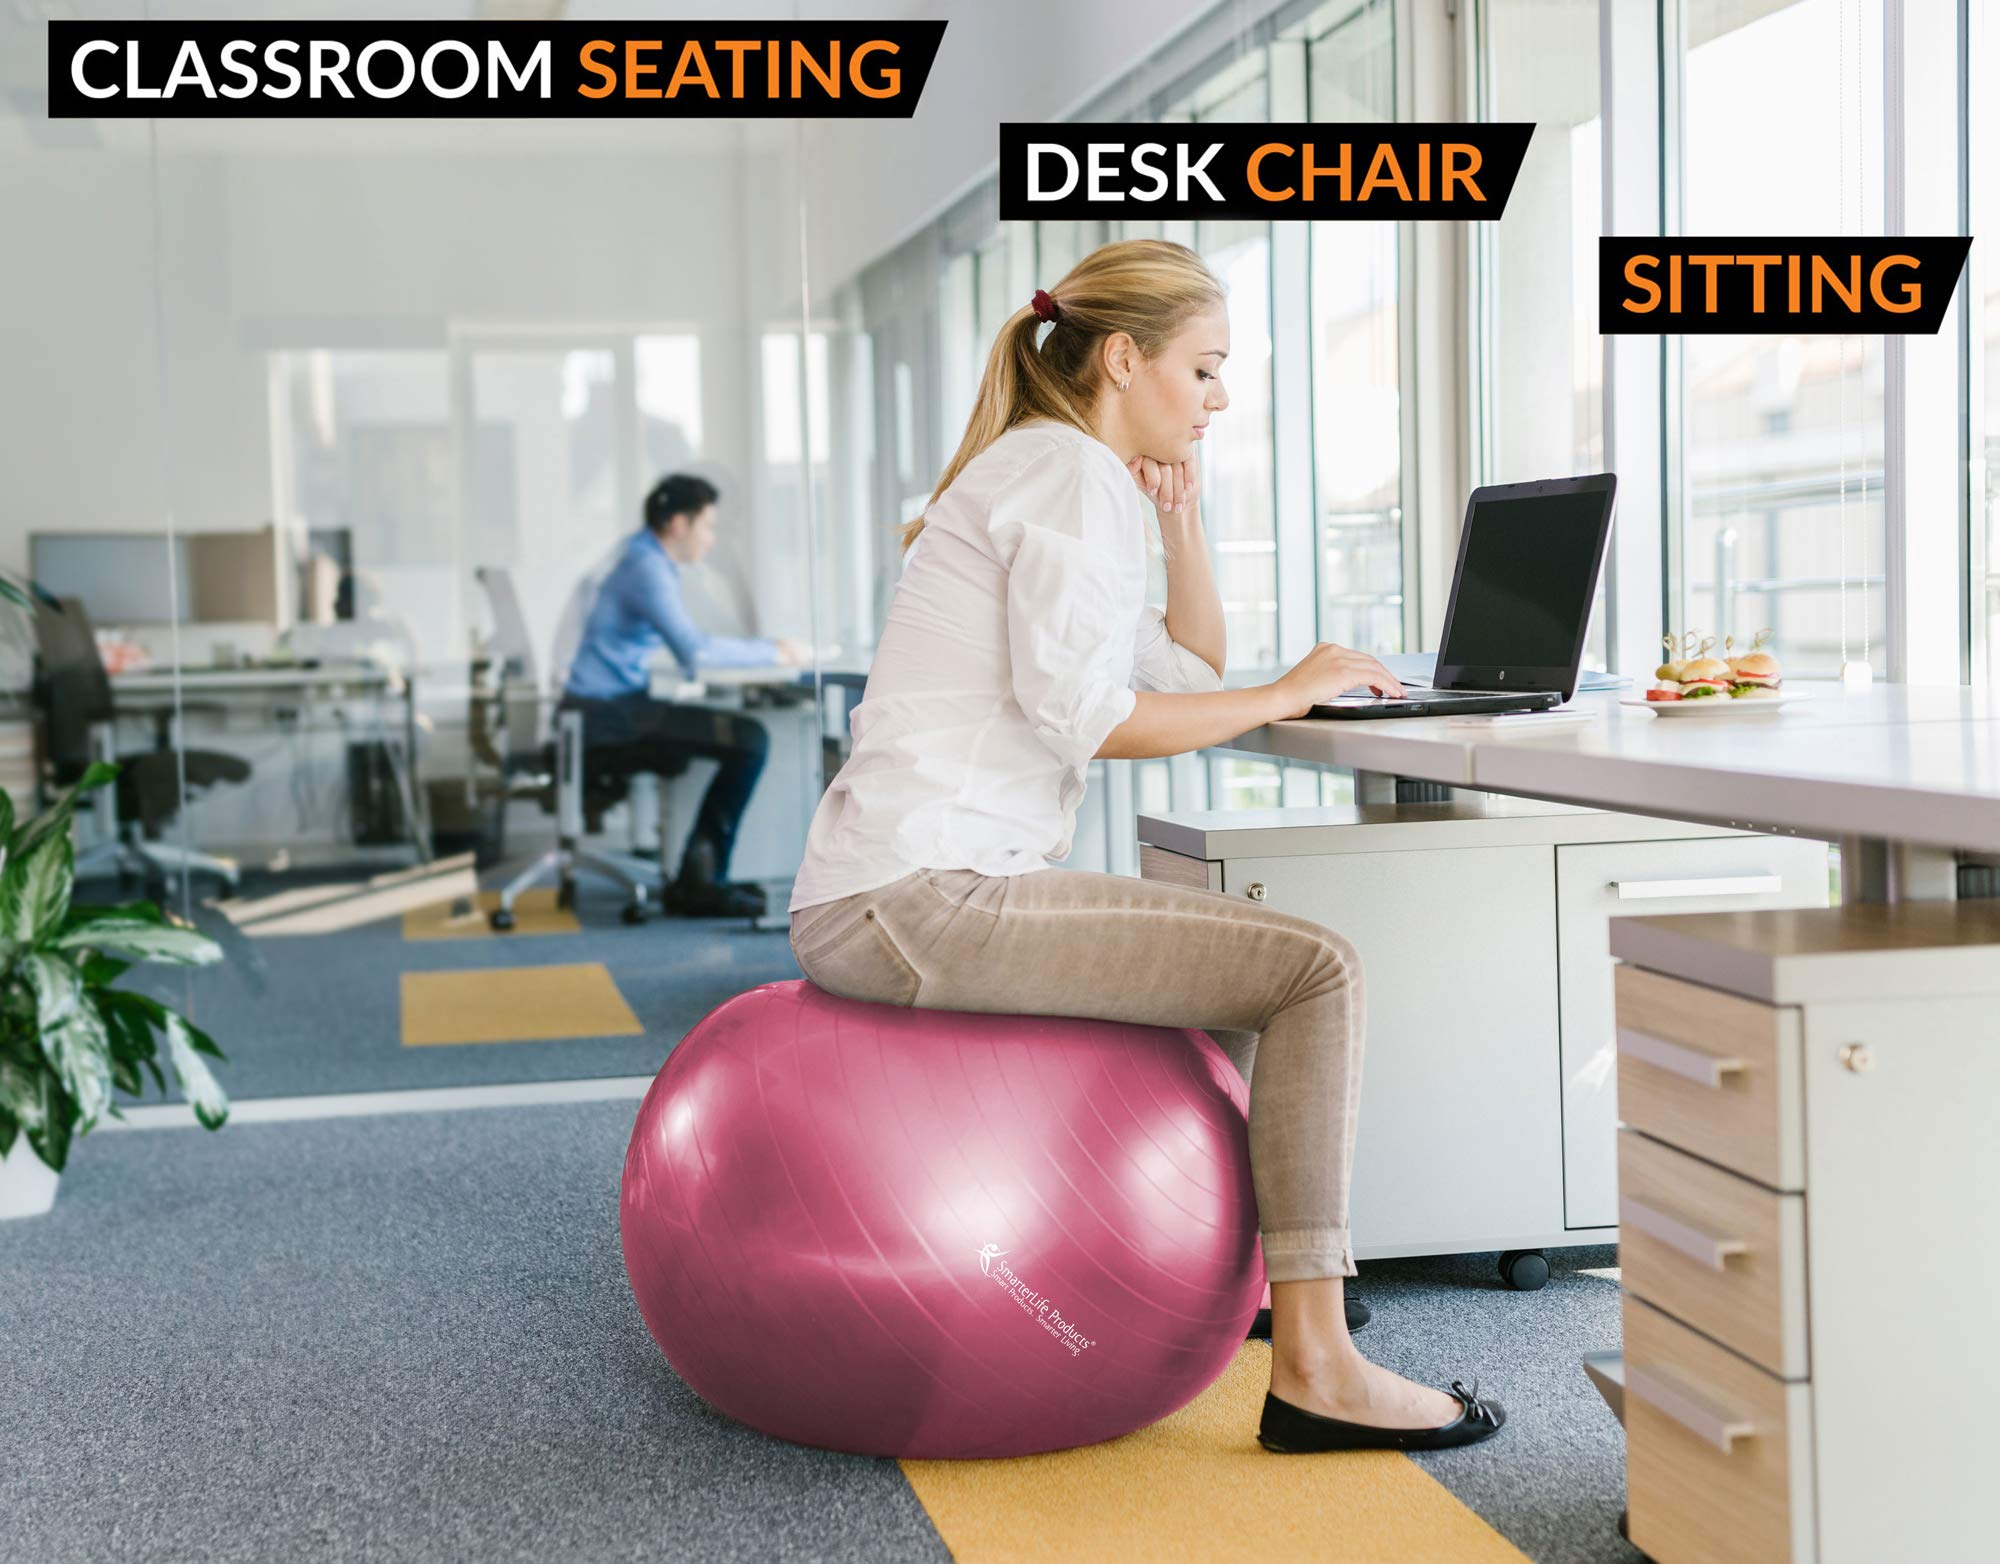 Exercise Ball for Yoga, Balance, Stability from SmarterLife - Fitness, Pilates, Birthing, Therapy, Office Ball Chair, Classroom Flexible Seating - Anti Burst, No Slip, Workout Guide (Pink, 65 cm) by SmarterLife Products (Image #6)